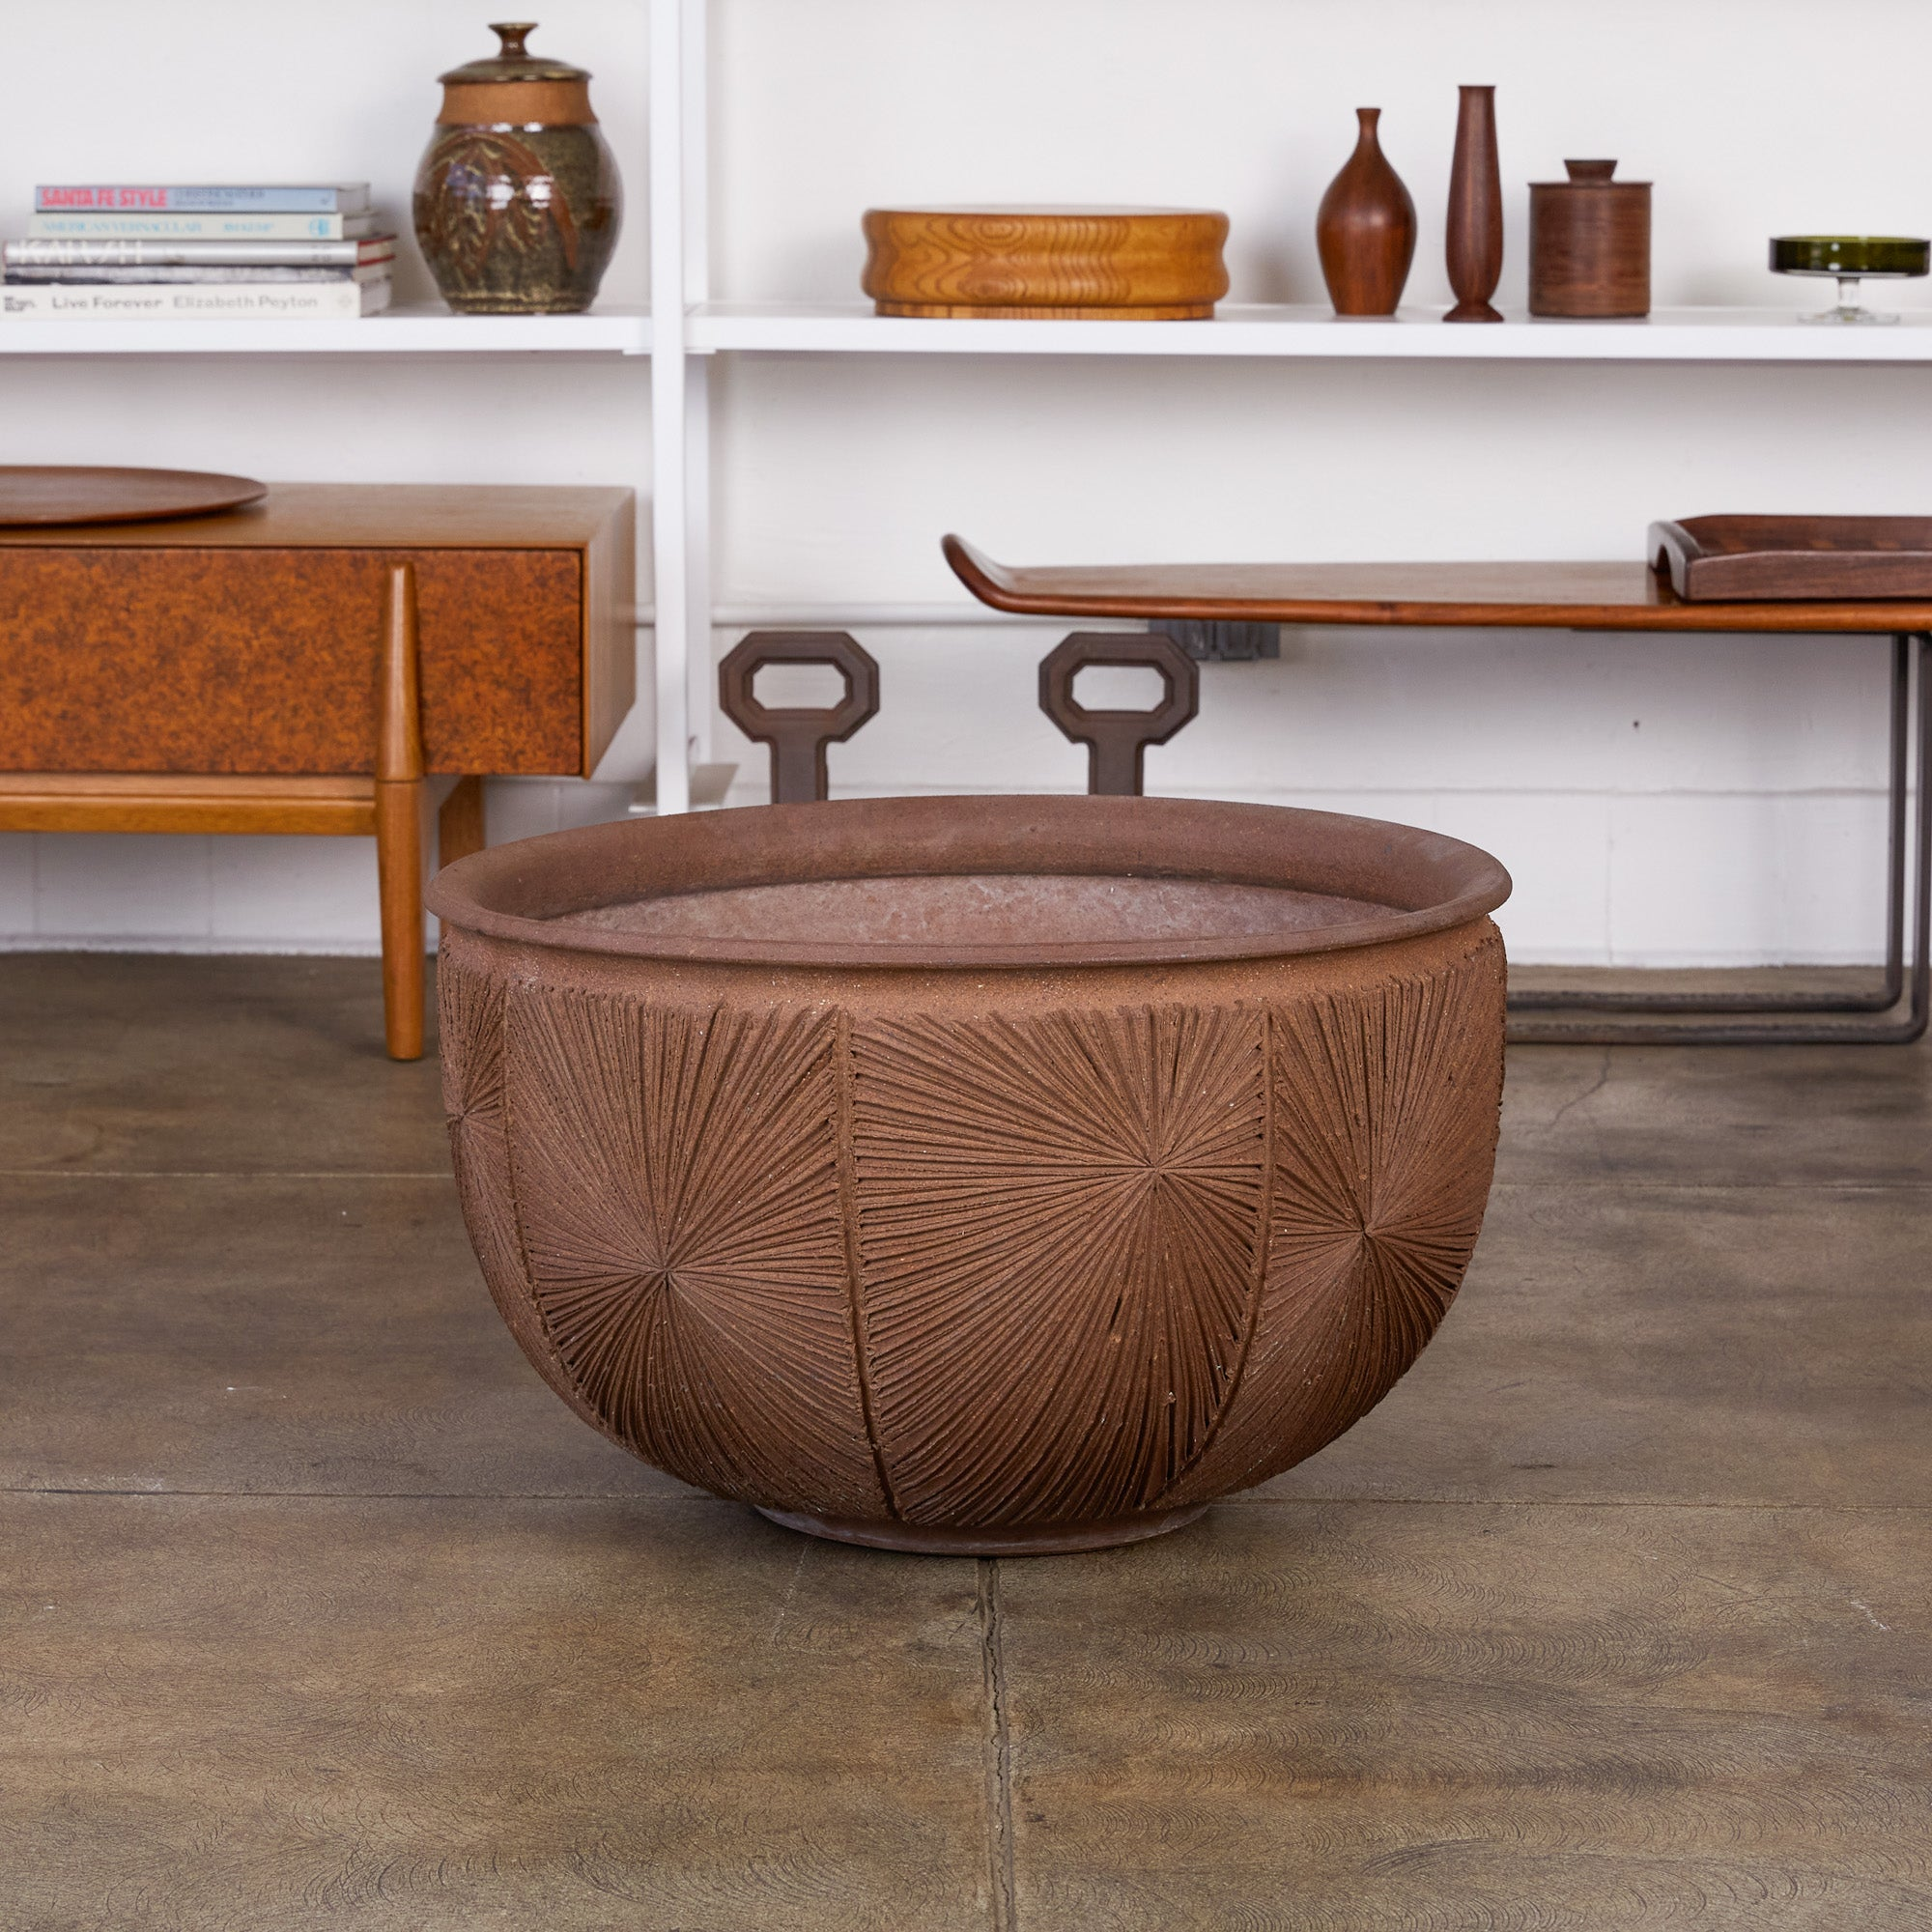 "David Cressey & Robert Maxwell for Earthgender ""Sunburst"" Bowl Planter"